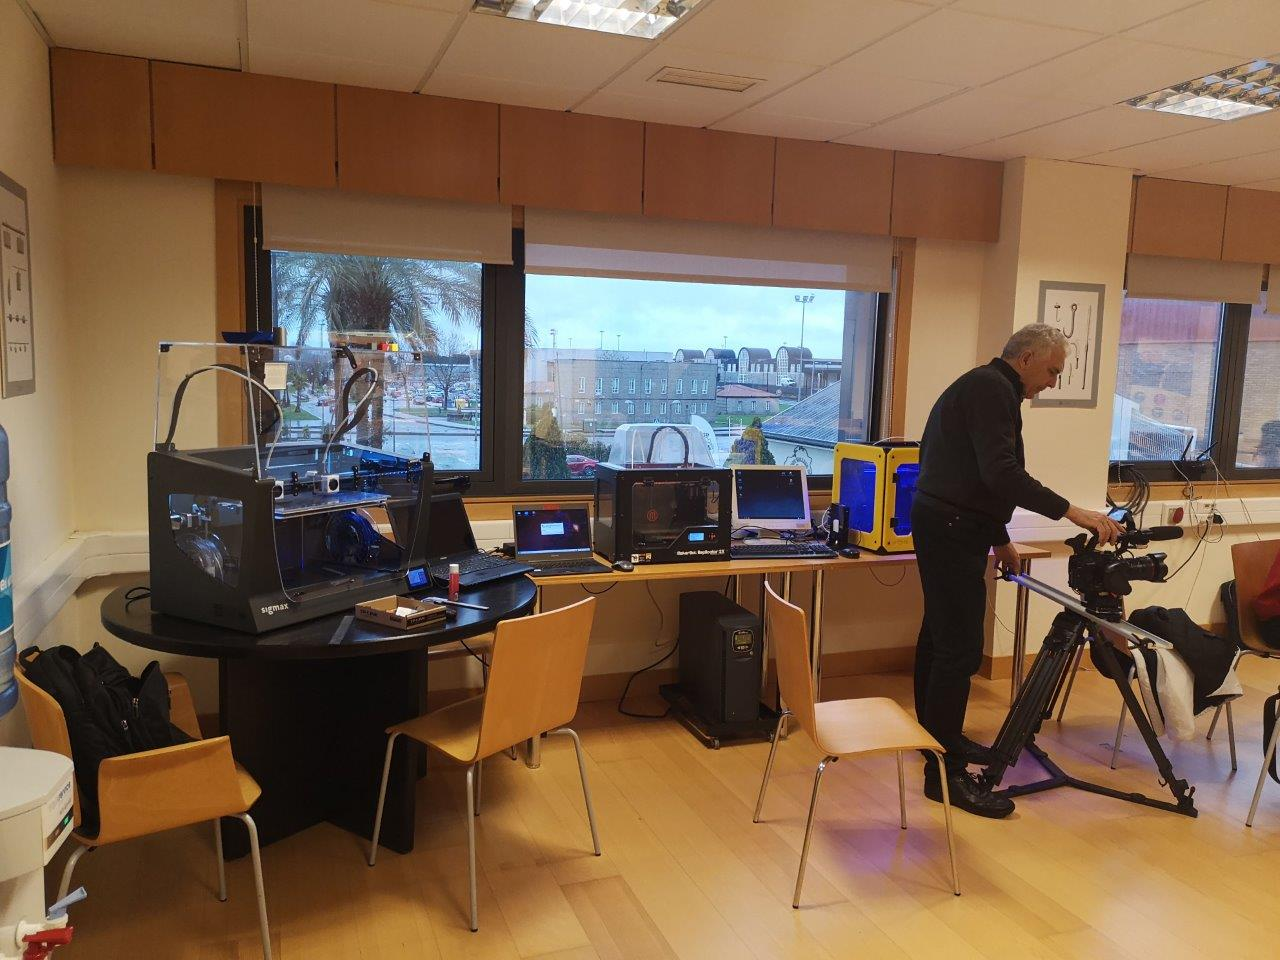 MOL2 Spain - Setting up the 3D printing workshop (Pontevedra)